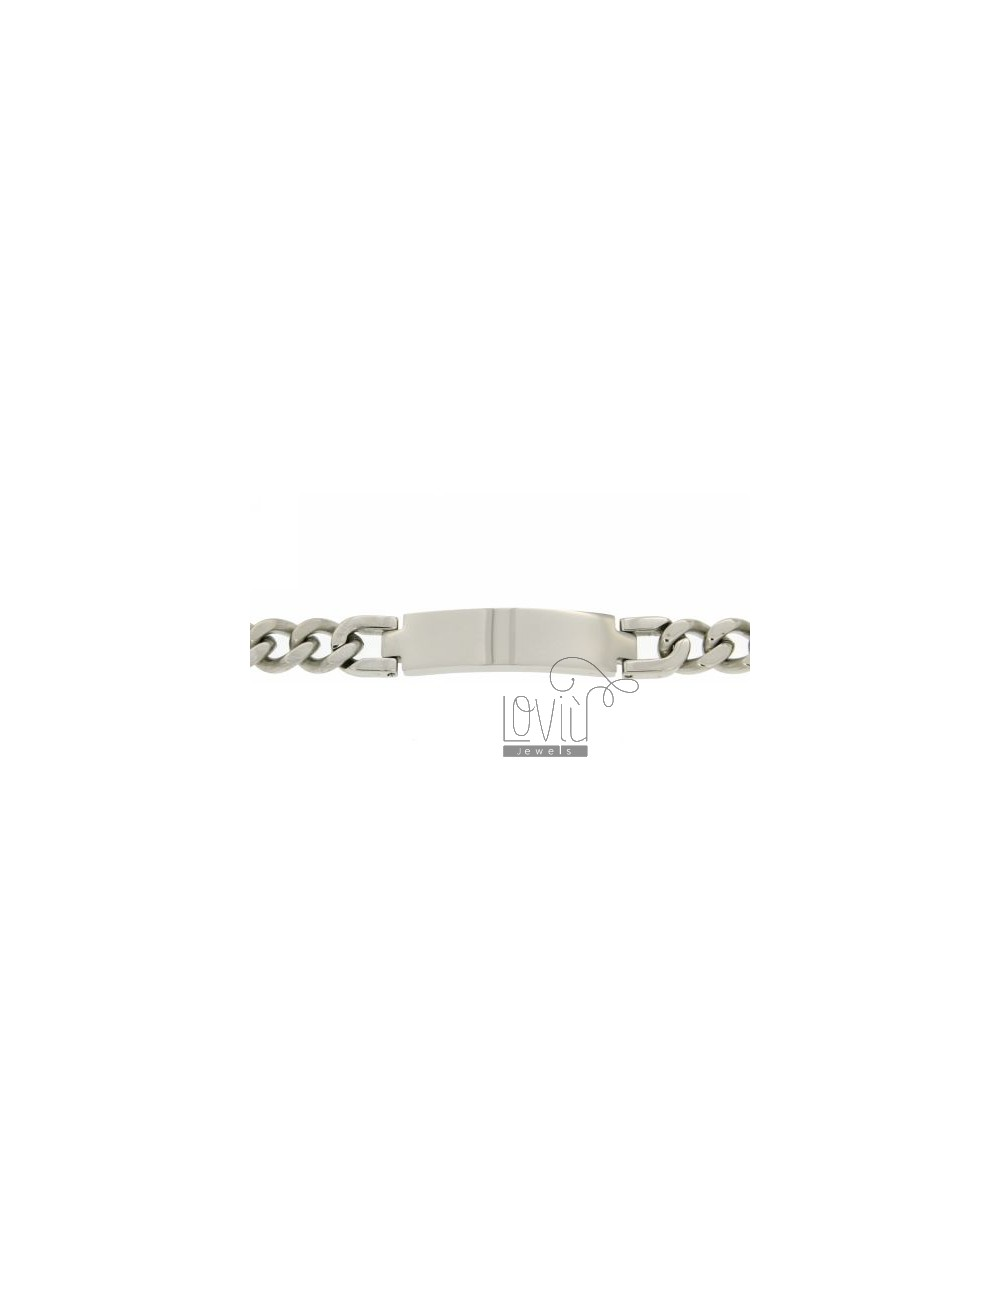 GRUMETTA STEEL BRACELET WITH PLATE 10 MM